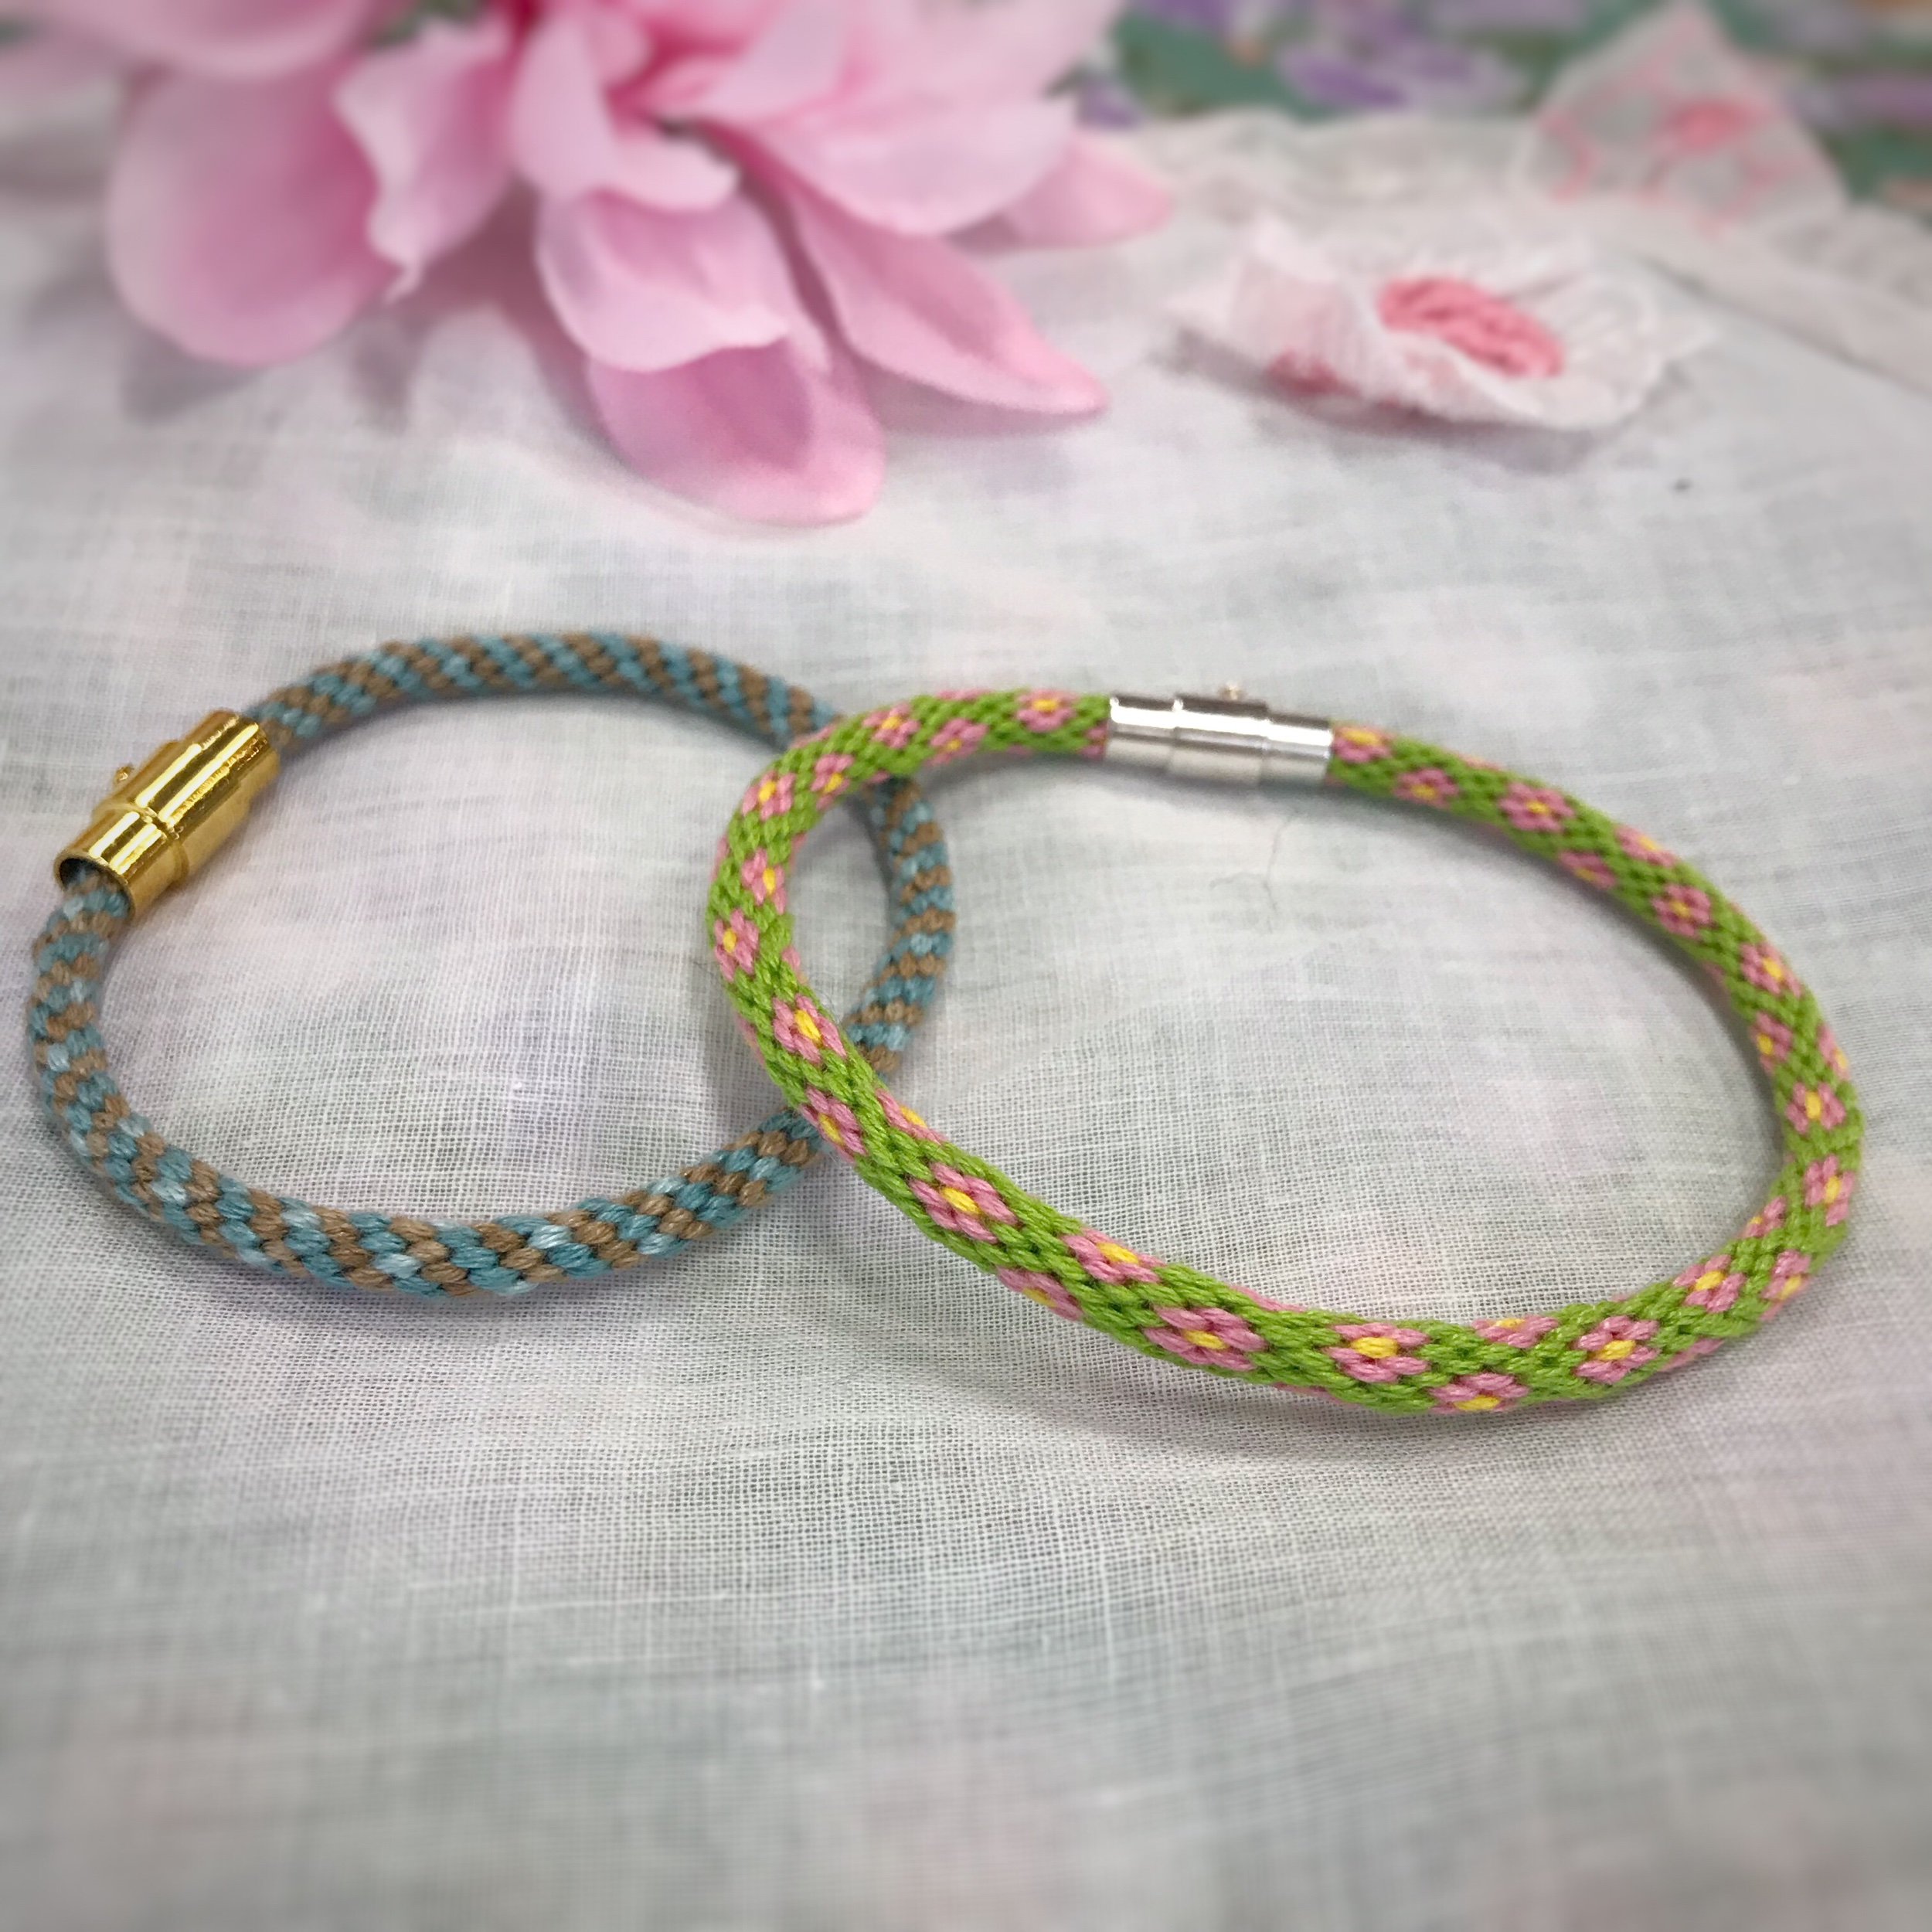 CURRENT CLASSES & EVENTS - Kumihimo Bracelet [two spaces available]August 10, 10:00am-2:30pm | Instructor: Sandy Buzzelli | $40 + materialsAs knitters and crocheters, we all have leftover bits of yarn in our stashes. Kumihimo, a Japanese form of braiding, can be a perfect way to use up some of those leftovers. In this class, you'll have the choice of making an 8-strand spiral bracelet or a 20-strand flower bracelet.A kumihimo bracelet kit is available for purchase at Yarn Folk -- it contains all the supplies needed to make the kumihimo bracelet class project.Berroco Fall Yarn TastingAugust 14, 5:00-7:00pm | $12Berroco Fall Yarn TastingAugust 23, 5:00-7:00pm | $12Enjoy light refreshments, knittable samples of six Berroco yarns, and preview pattern collections for Fall 2019! Bonus, if you are participating in the Slow Yarn Crawl, collect an extra stamp for attending a yarn tasting!Project CircleAugust 30, 5:00-7:00pm | no charge.Join us to work on your longer term projects!